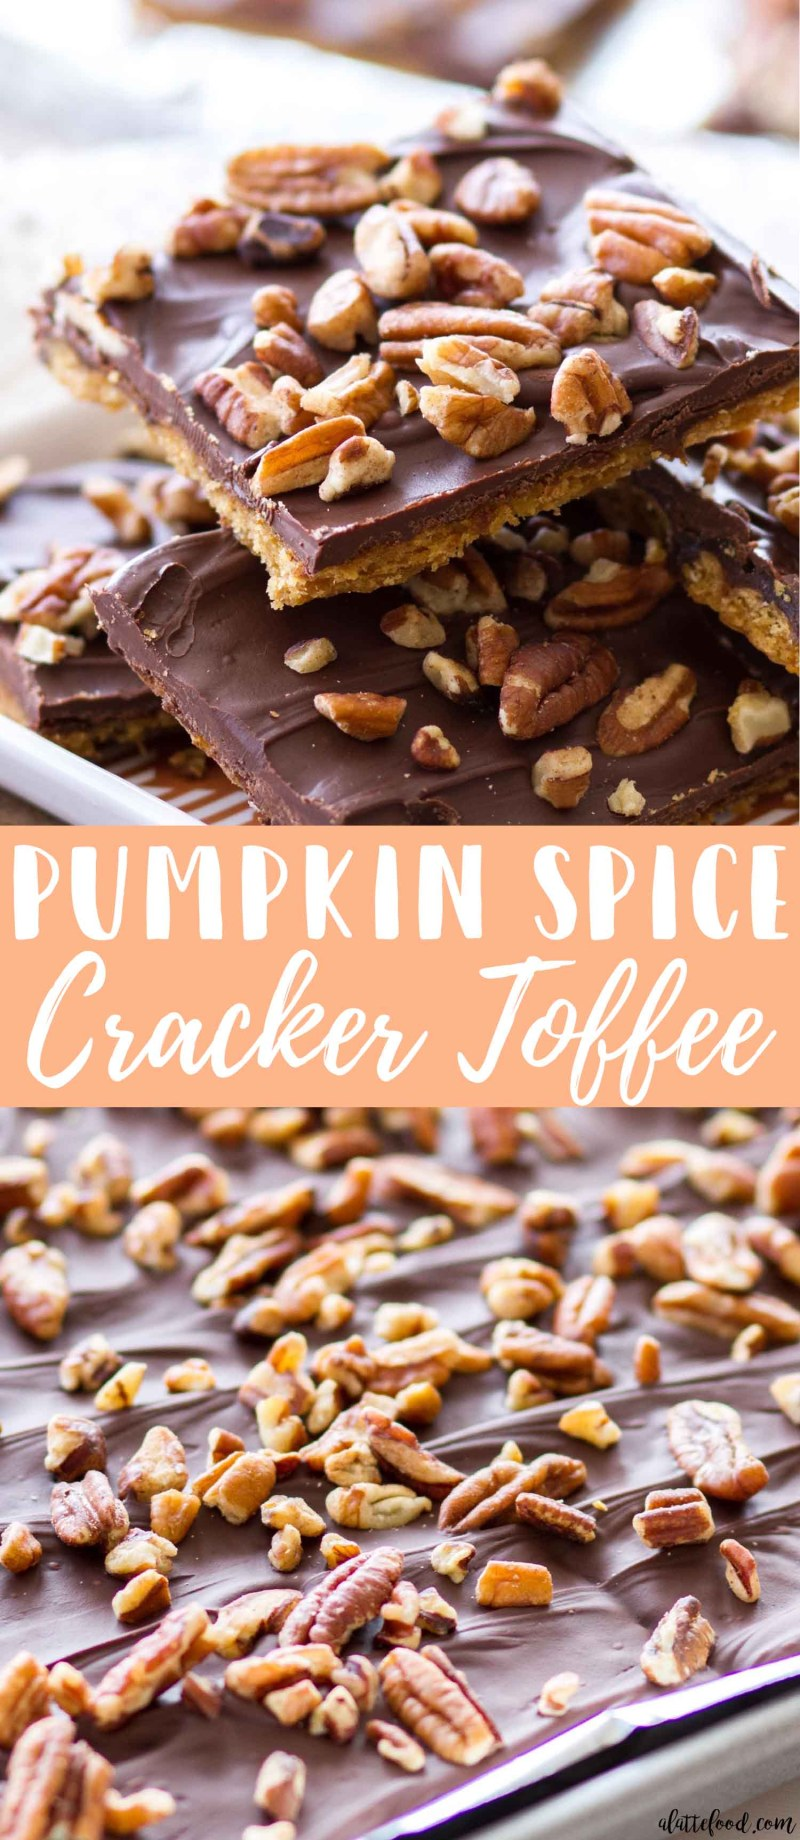 This Pumpkin Spice Cracker Toffee recipe is full of sweet spices and rich chocolate! This easy homemade toffee begins with graham crackers, making this toffee recipe a cinch to make! Homemade toffee is the perfect fall dessert or Thanksgiving dessert! Plus, a video of the step-by-step process below! #pumpkin #toffee #thanksgiving #fall #dessert